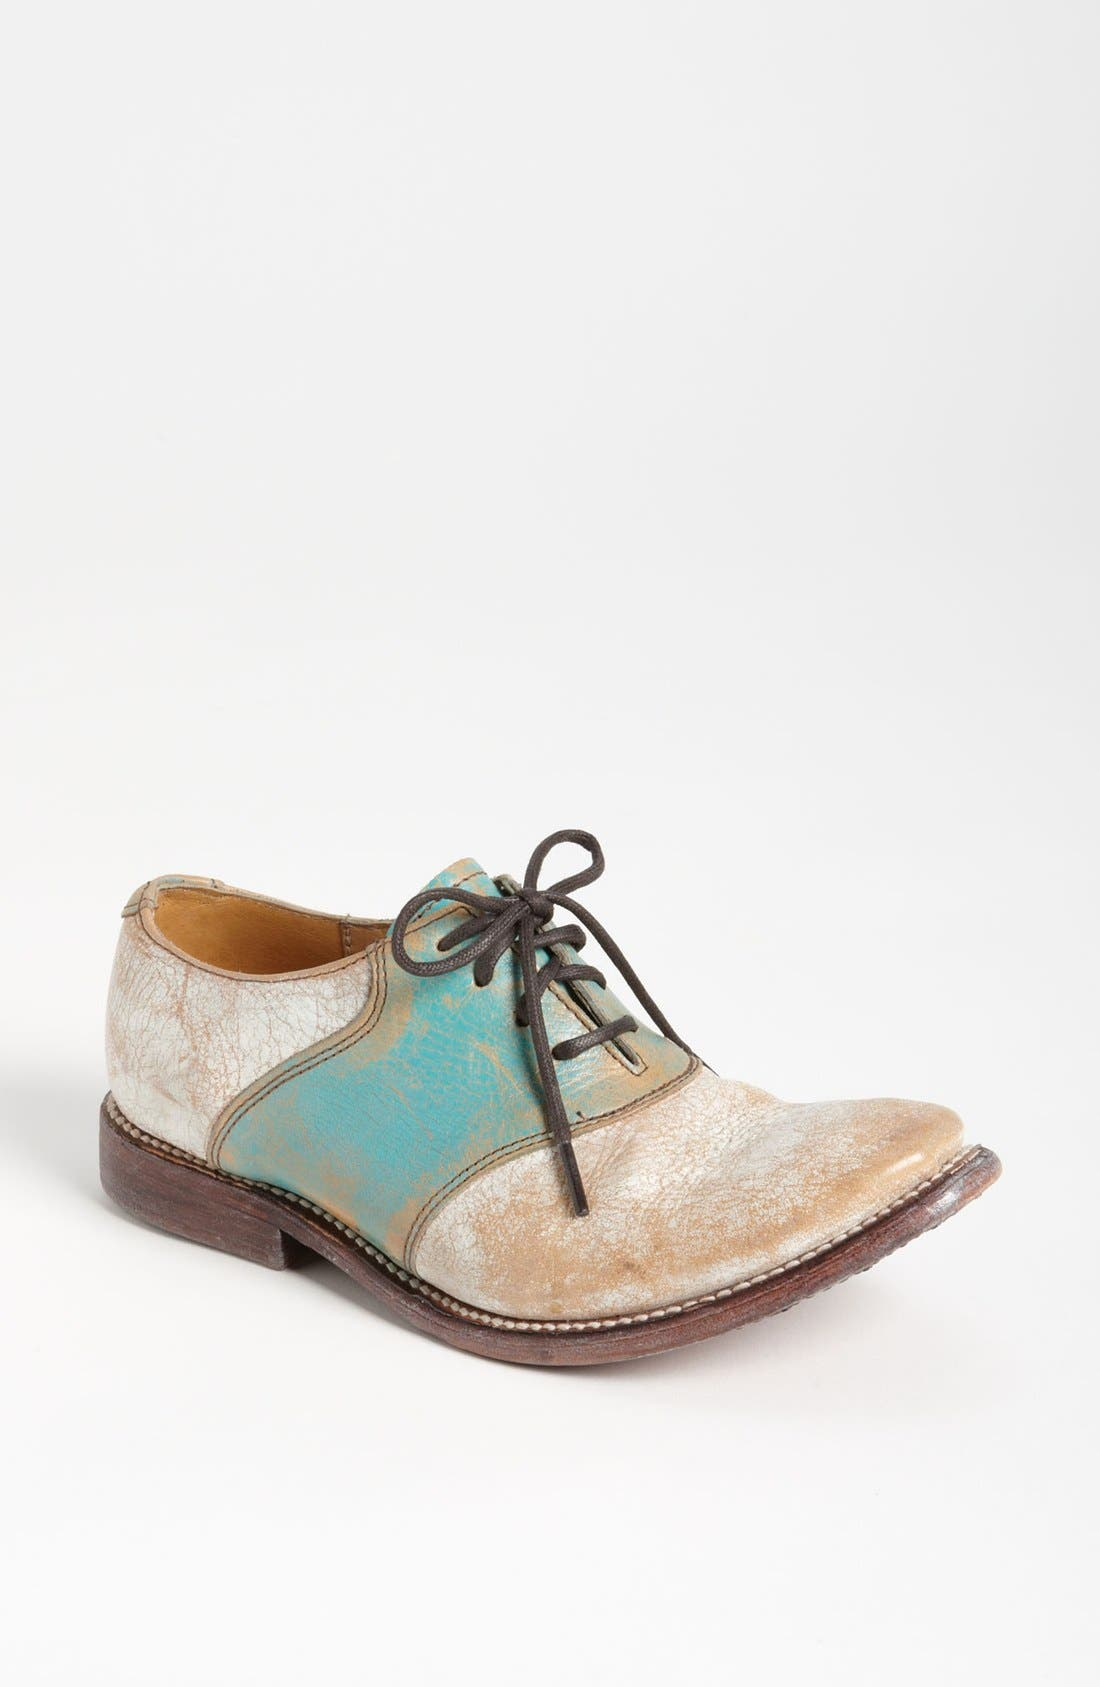 Main Image - Bed Stu 'Fury' Saddle Shoe